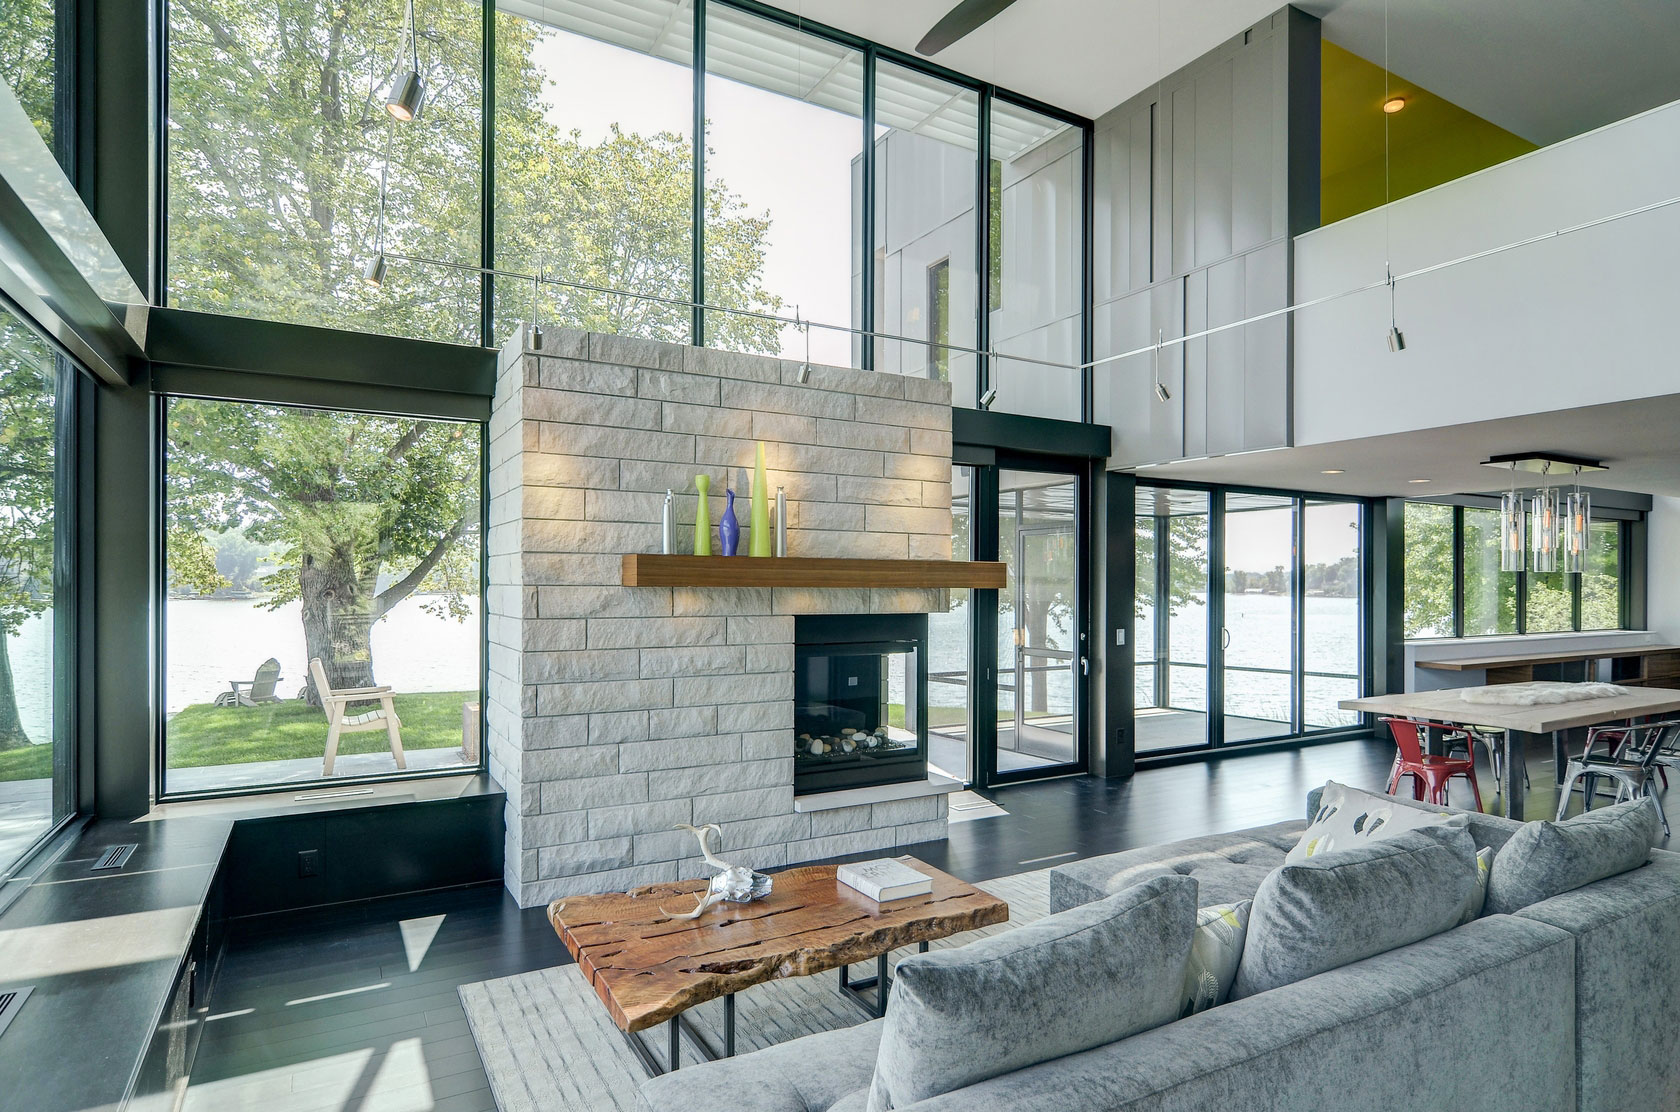 Retro House Design Edgewater residence by rosenow peterson design sisterspd